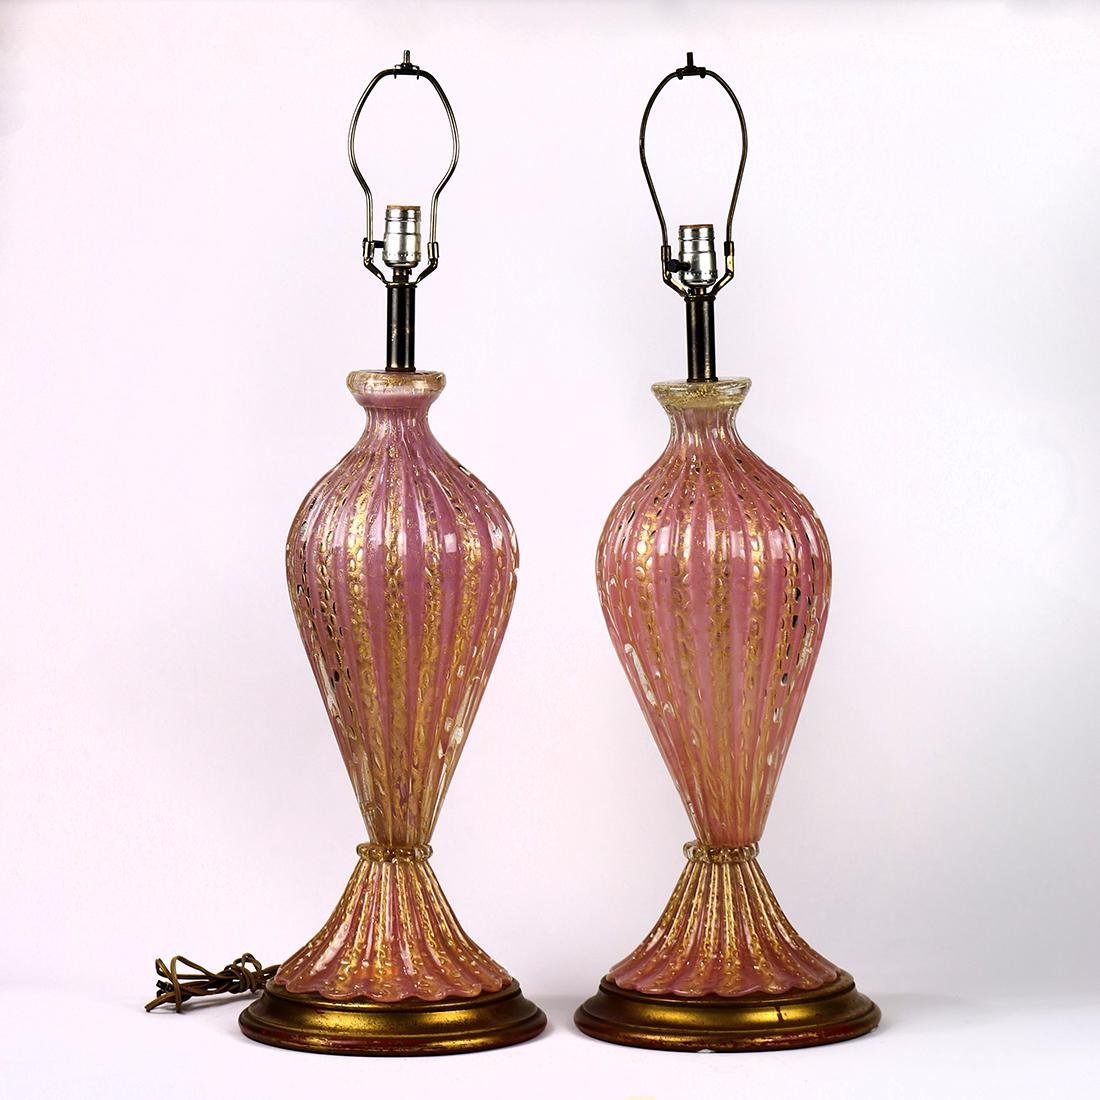 Murano Barovier and Toso pair of lamps